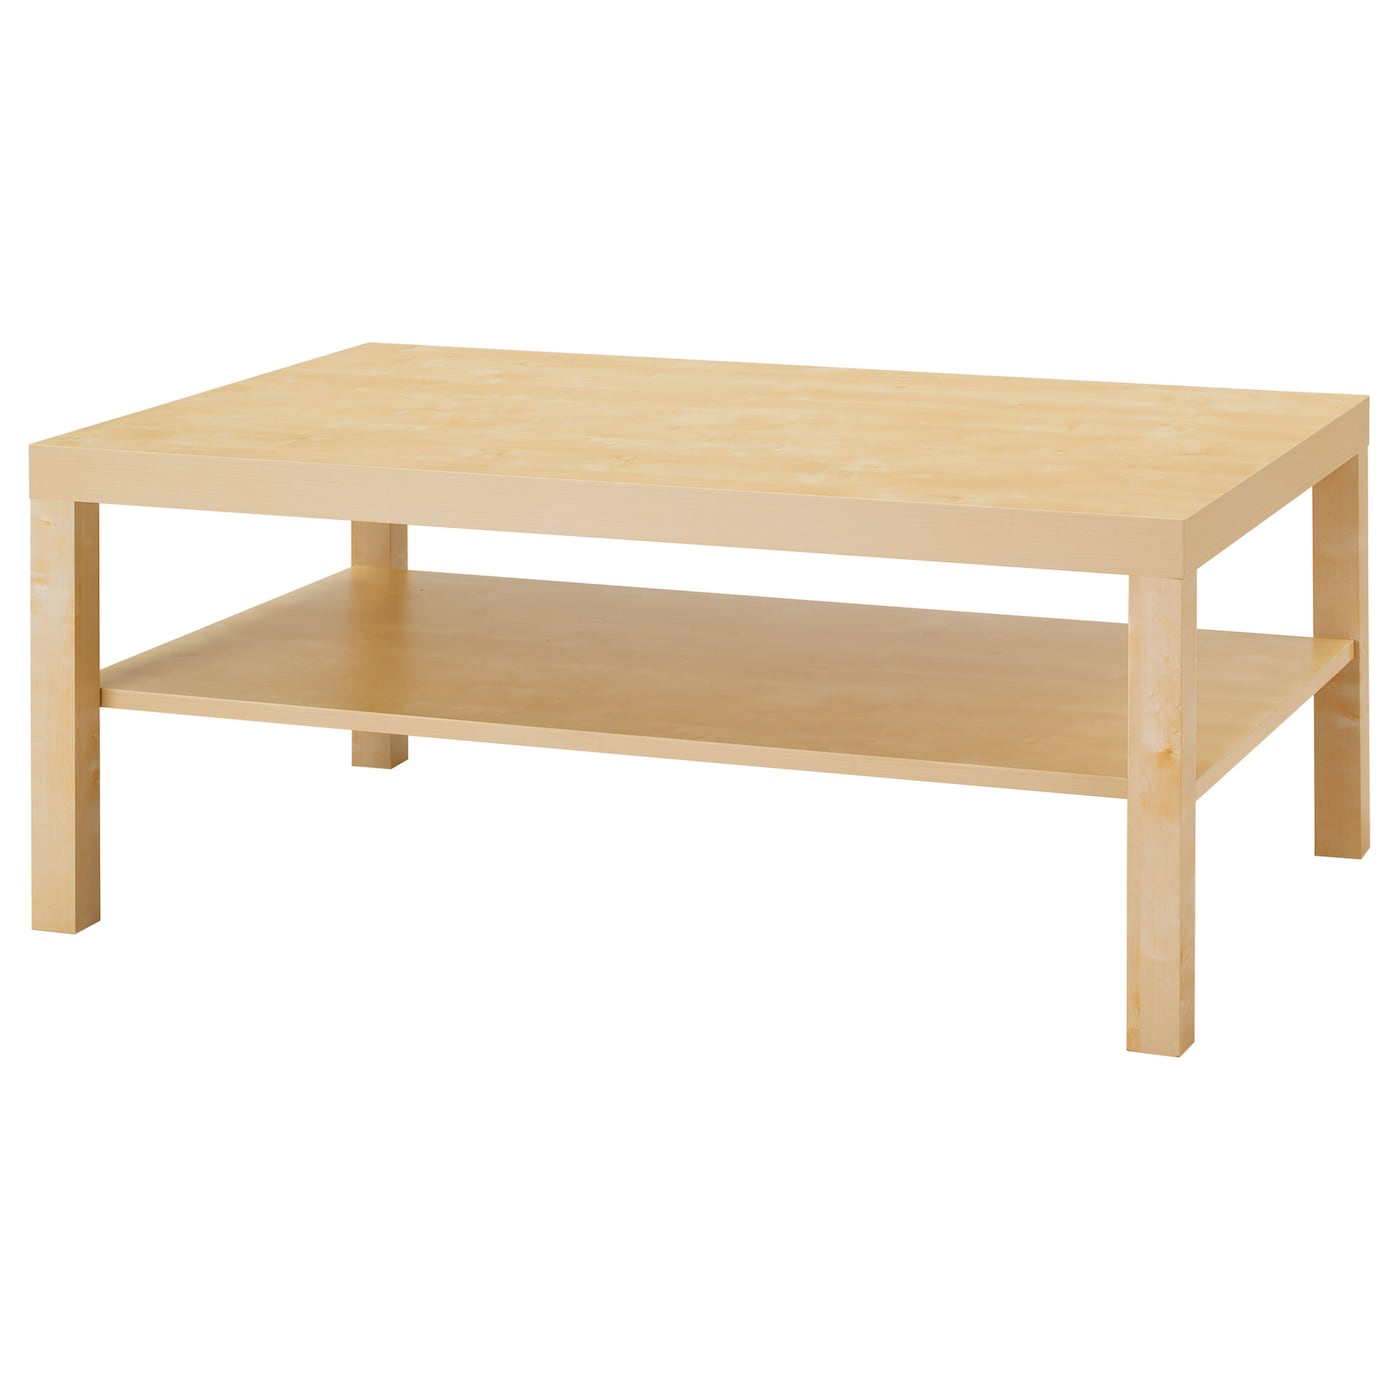 LACK Coffee Table Birch Effect 118x78 Cm IKEA